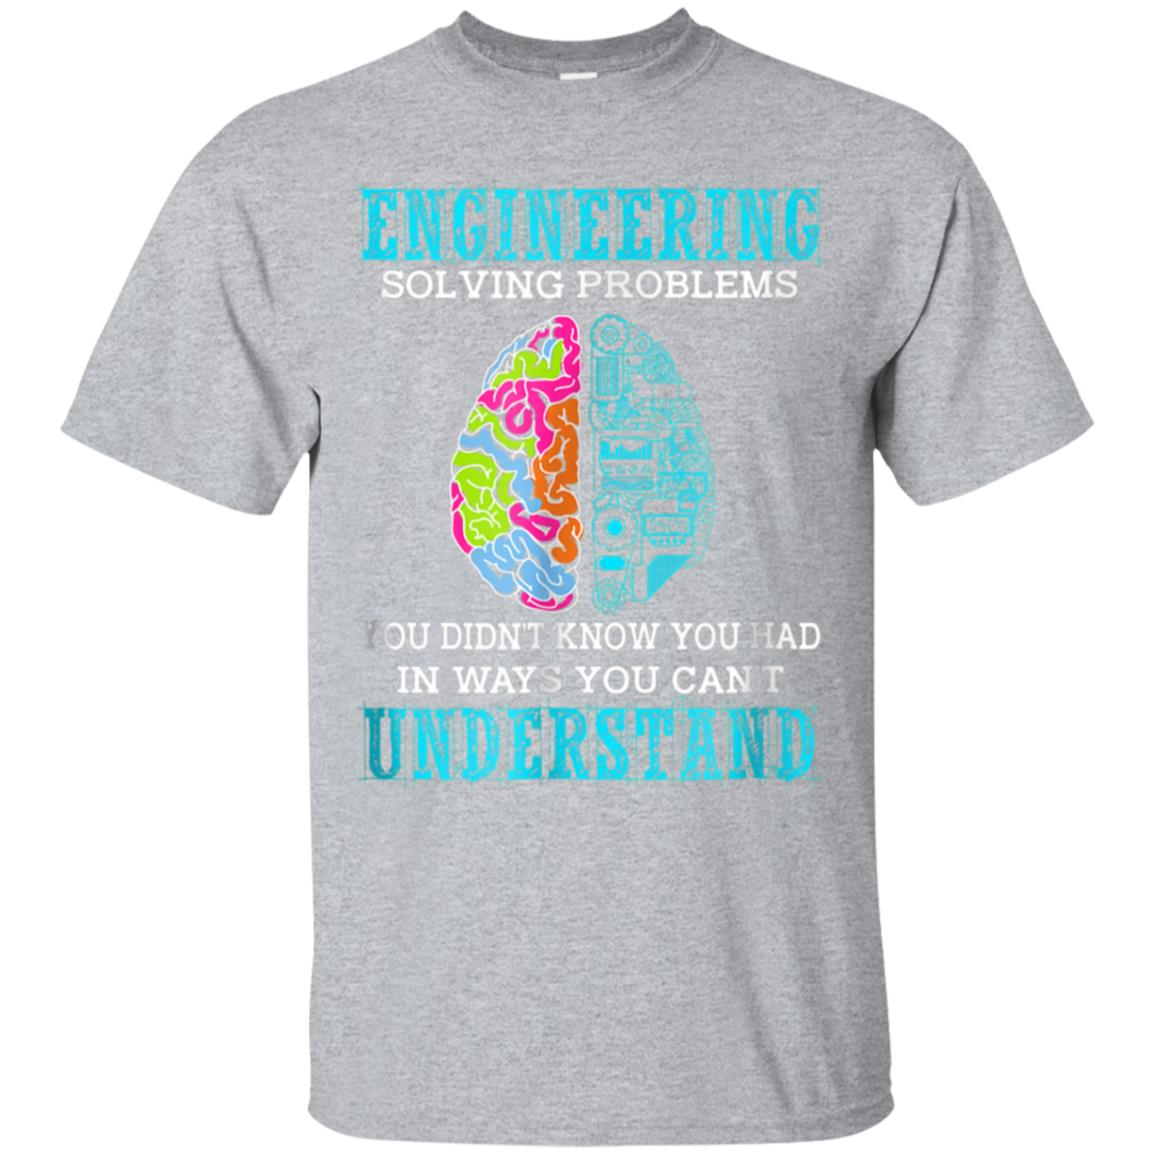 Solving Problems Funny Engineering T-shirt Engineer Gift 99promocode